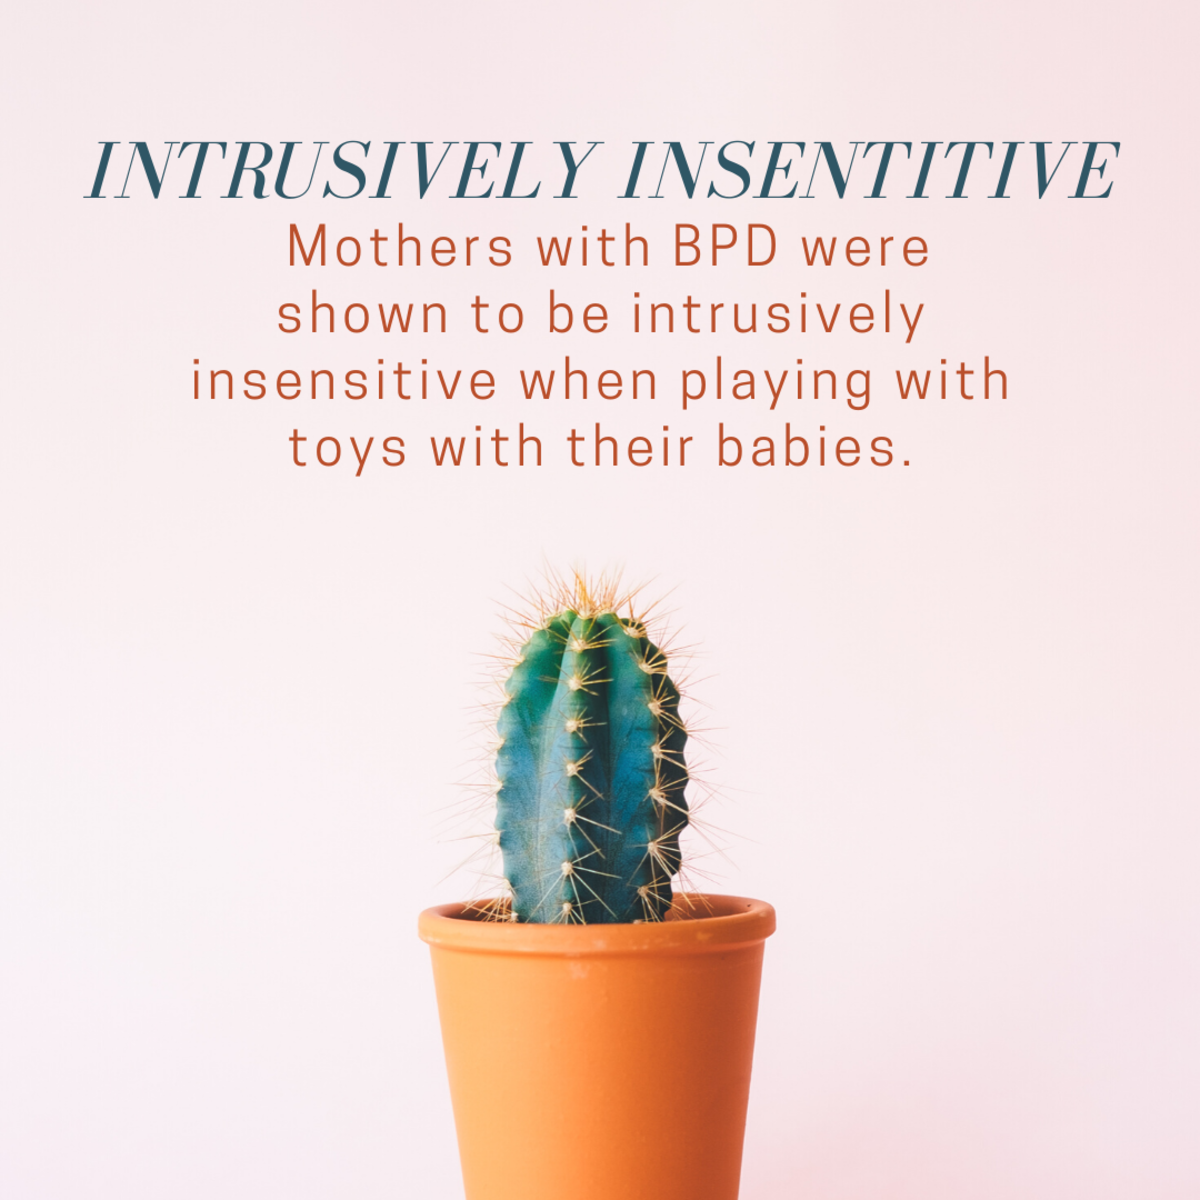 Intrusive insensitivity is often seen in the adult relationships of those with BPD as well.